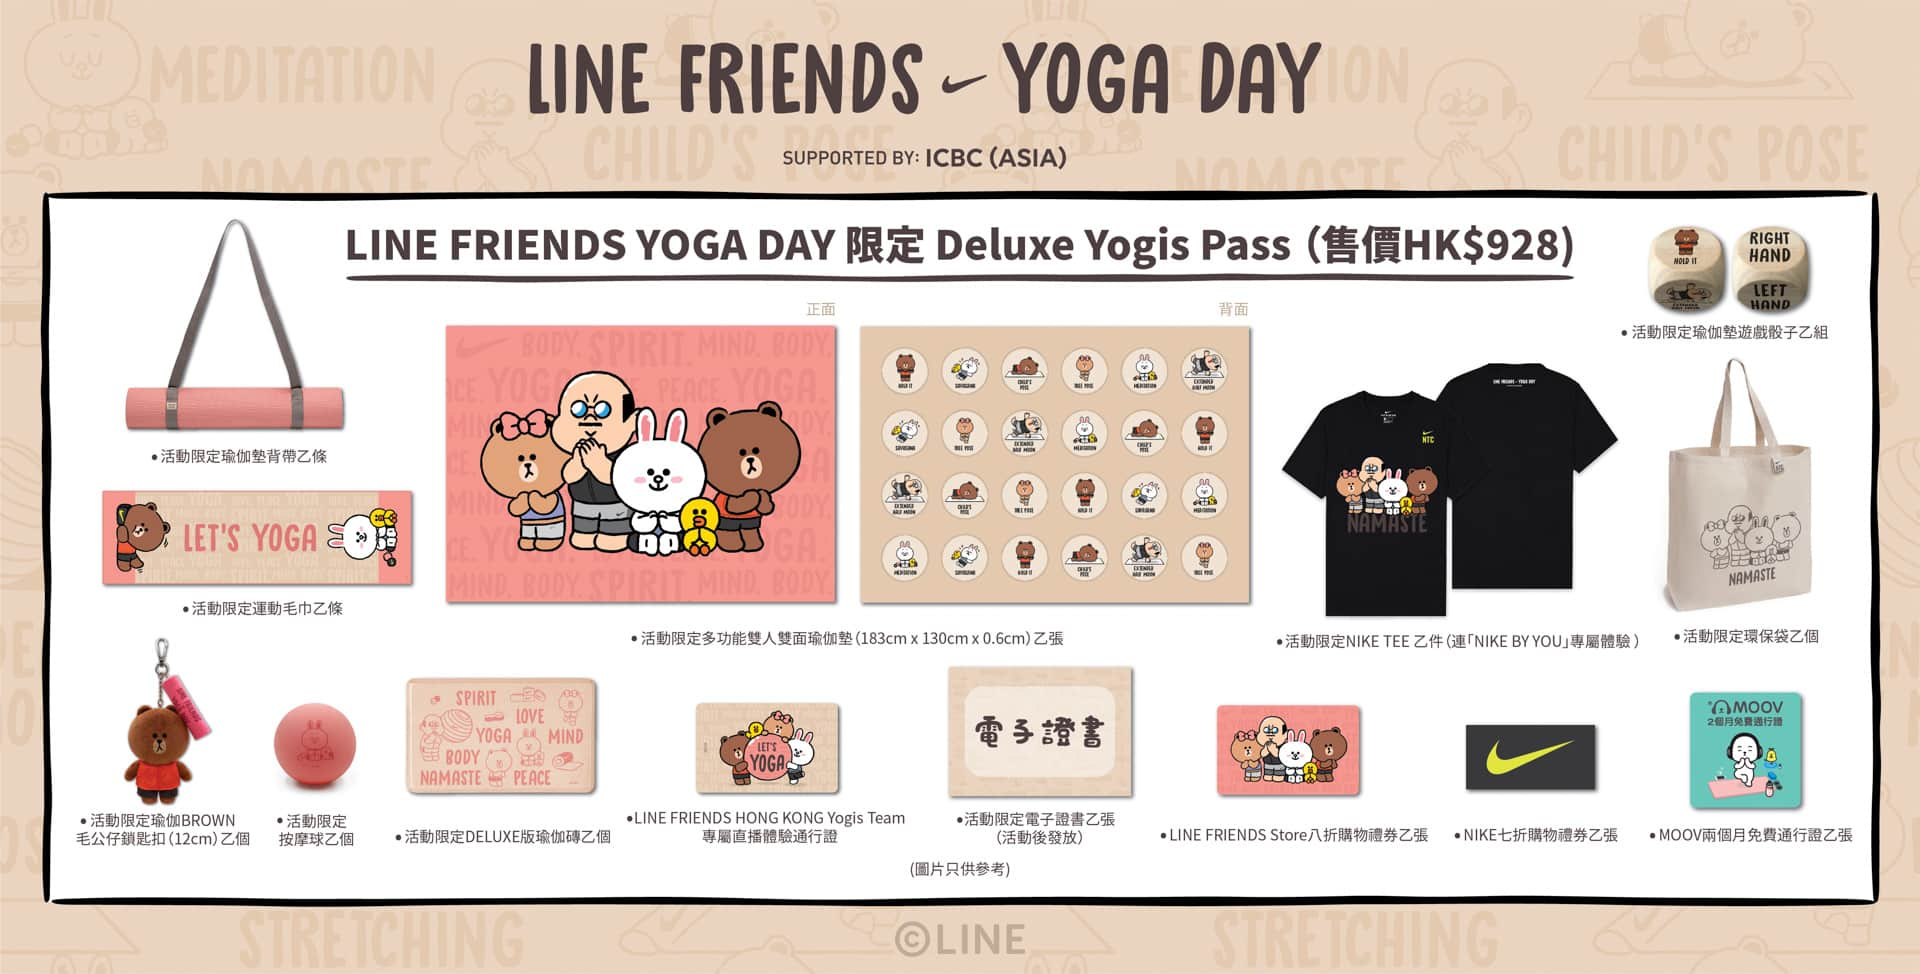 全球首個LINE FRIENDS瑜伽體驗|《LINE FRIENDS YOGA DAY》LINE FRIENDS YOGA DAY限定Deluxe Yogis Pass